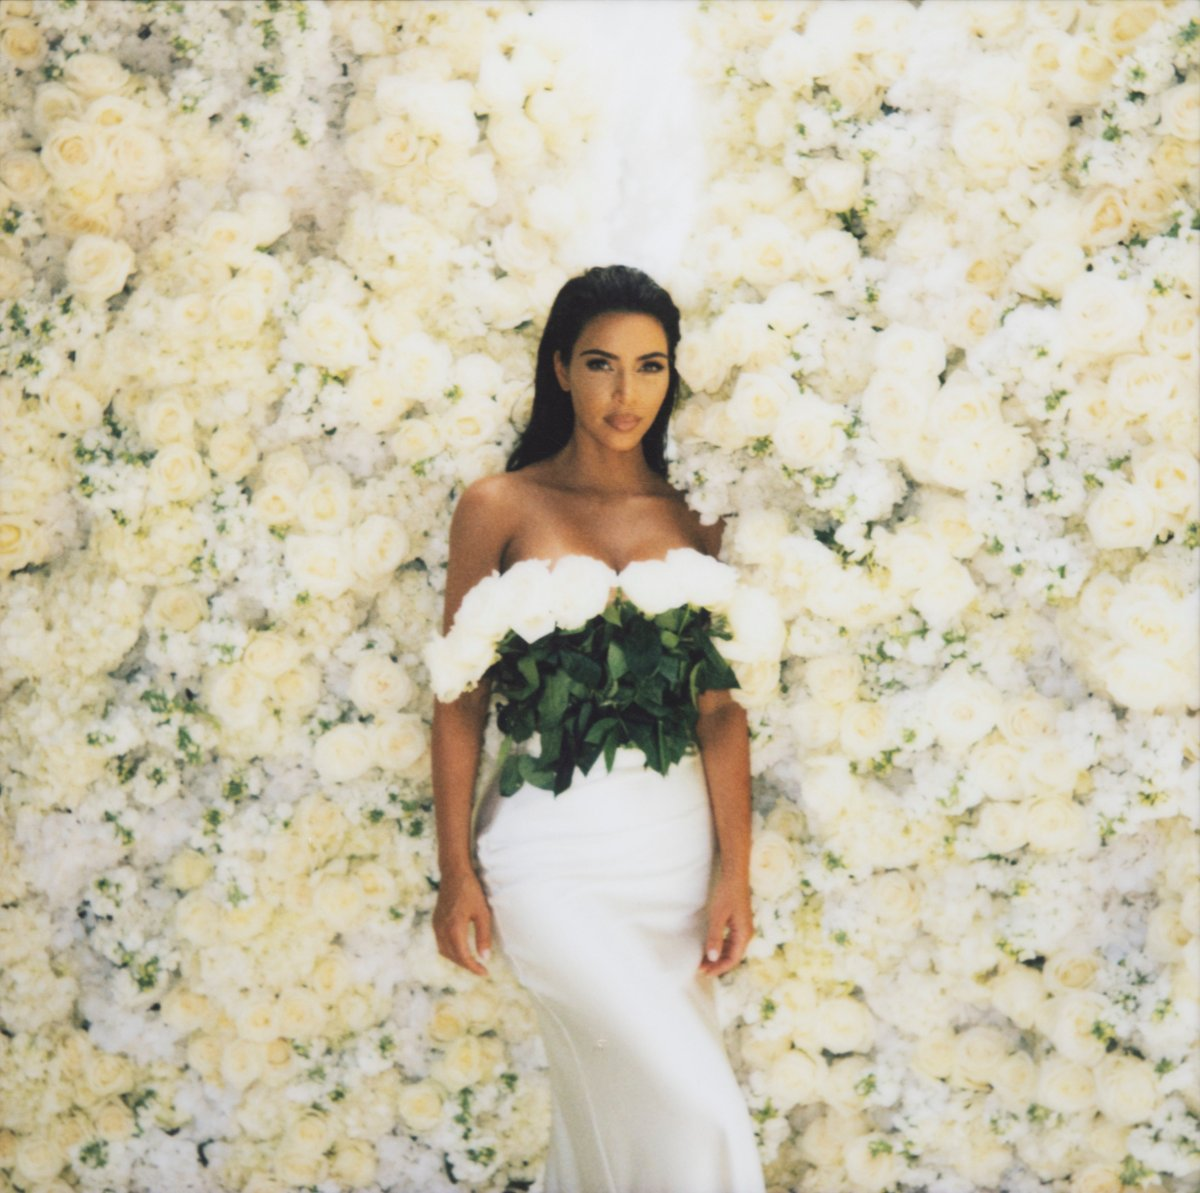 Countdown is on ⏲️ TOMORROW the Mrs. West Collection inspired by @kimkardashian's wedding glam restocks at 9AM PST on http://KKWBEAUTY.COM